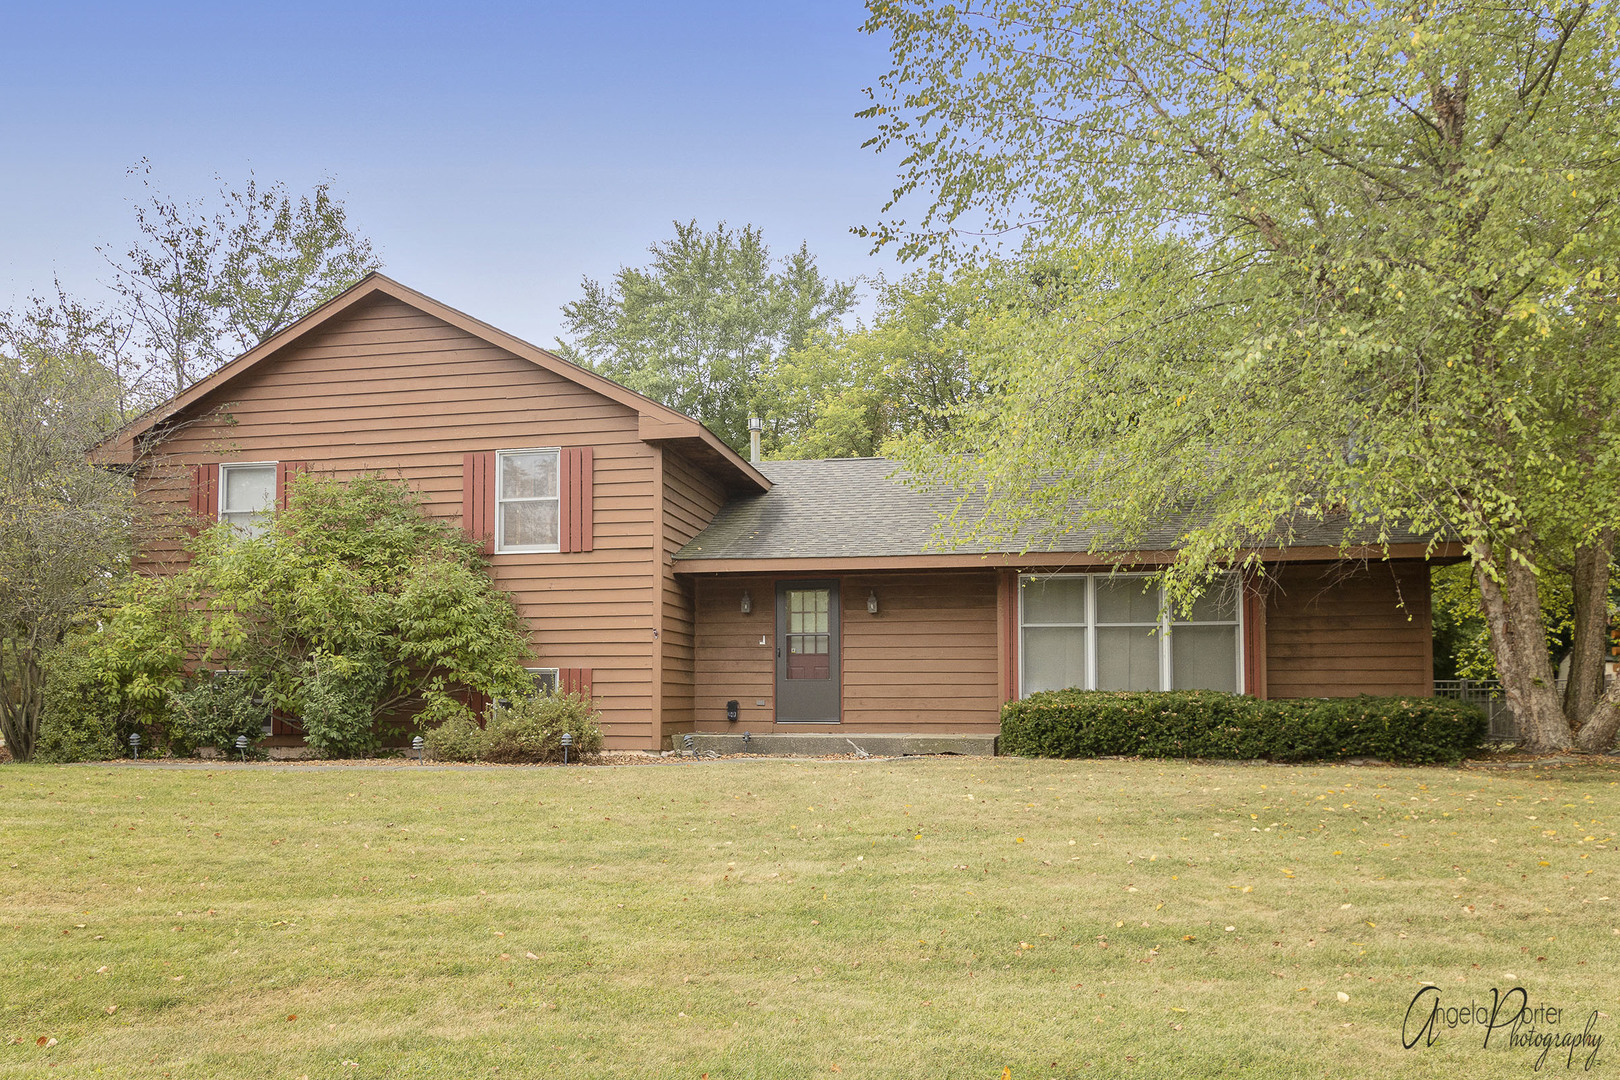 2317 Colby Point Road, Mchenry, IL 60050